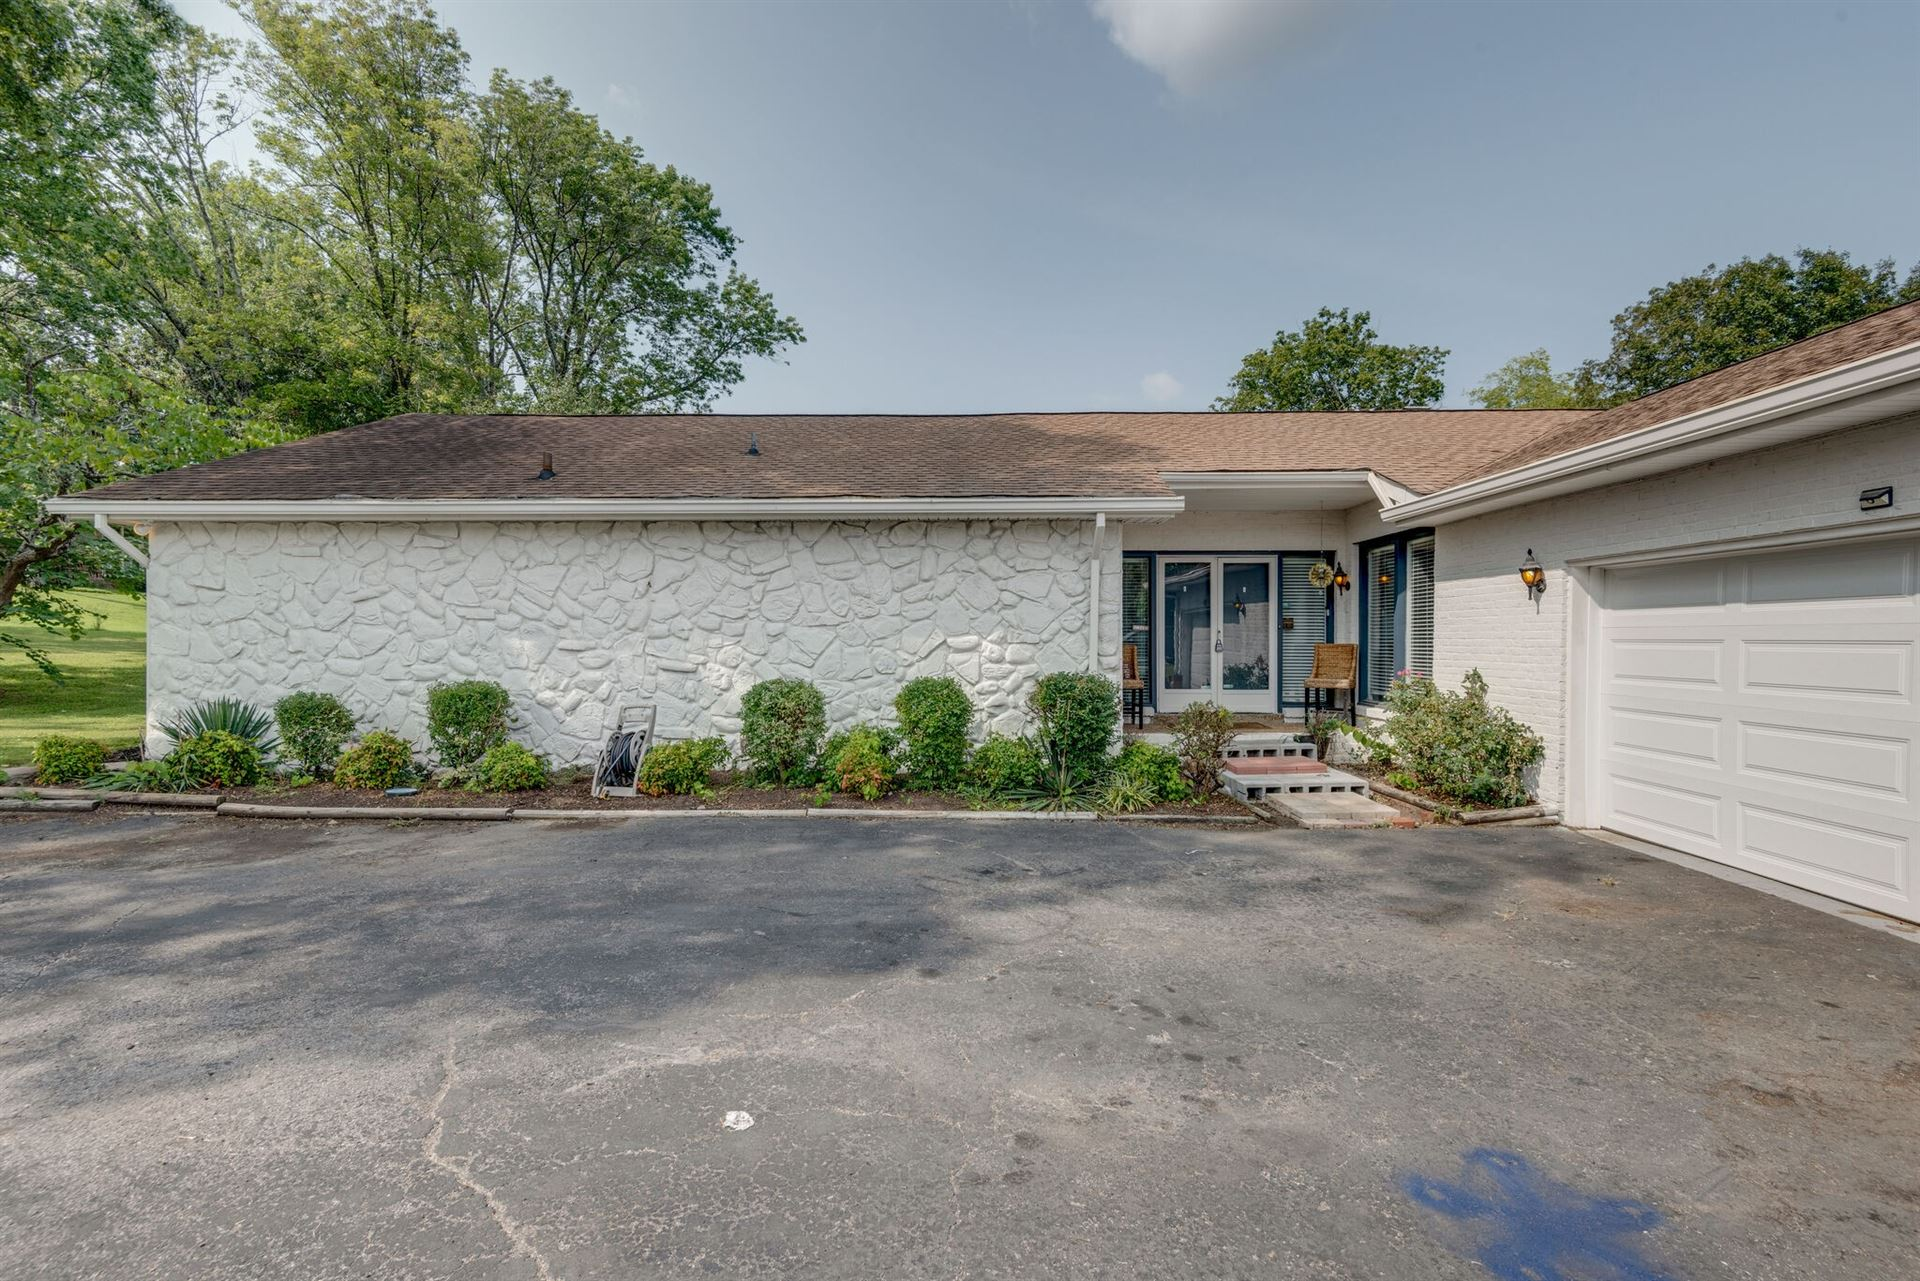 Photo of 4052 Port Cleburne Ln, Hermitage, TN 37076 (MLS # 2187249)